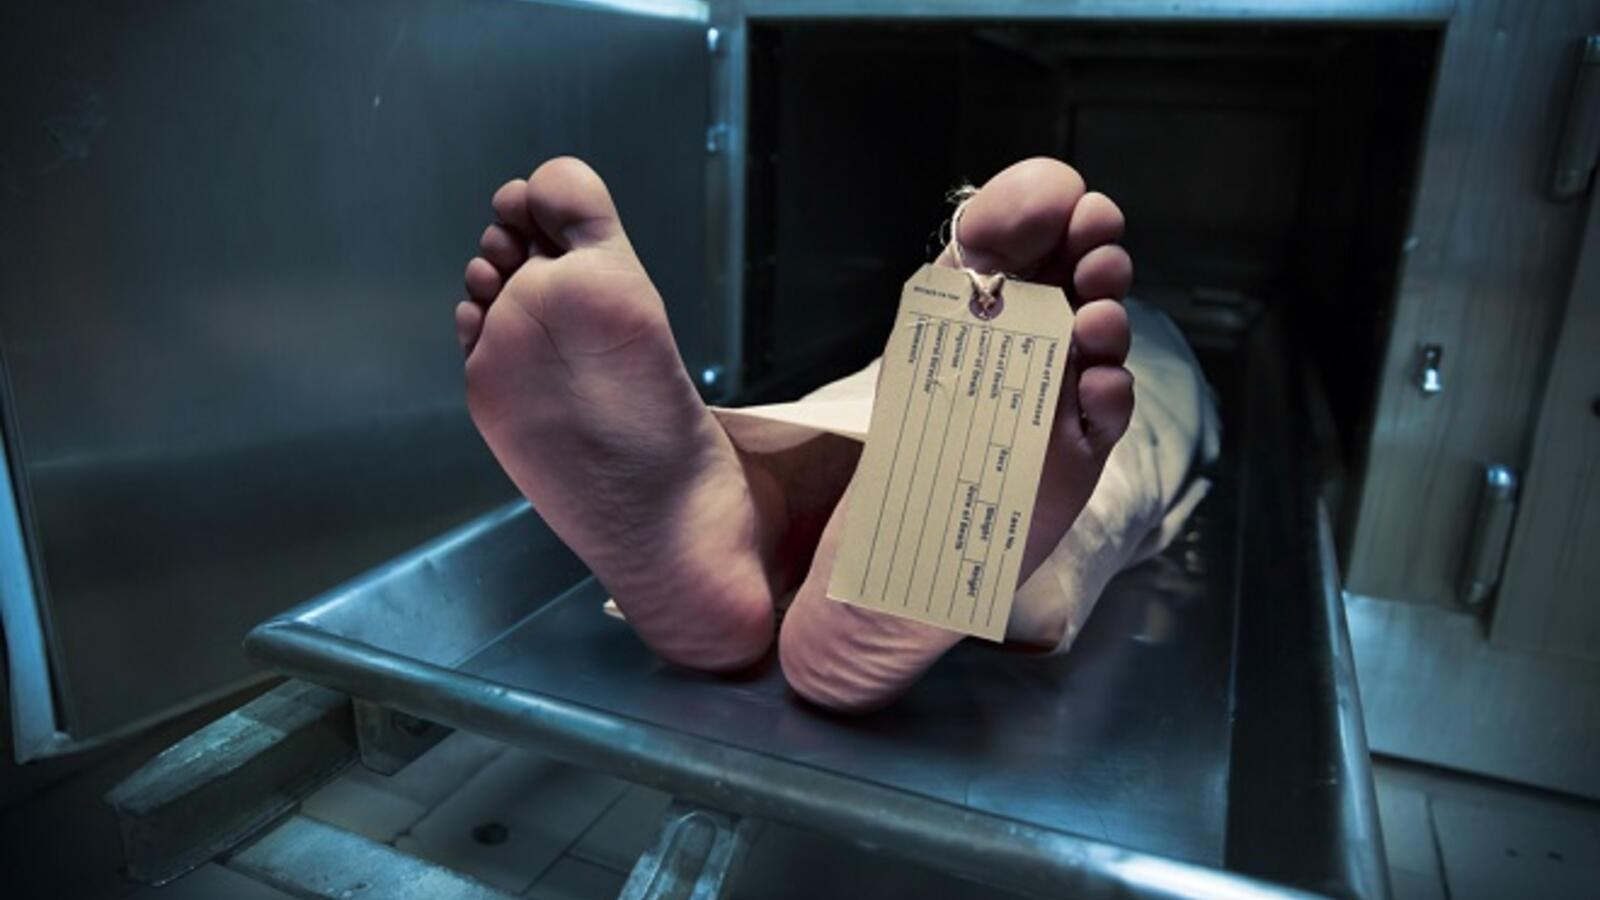 Saudi Arabia: Bodies of two Indian workers left to rot as